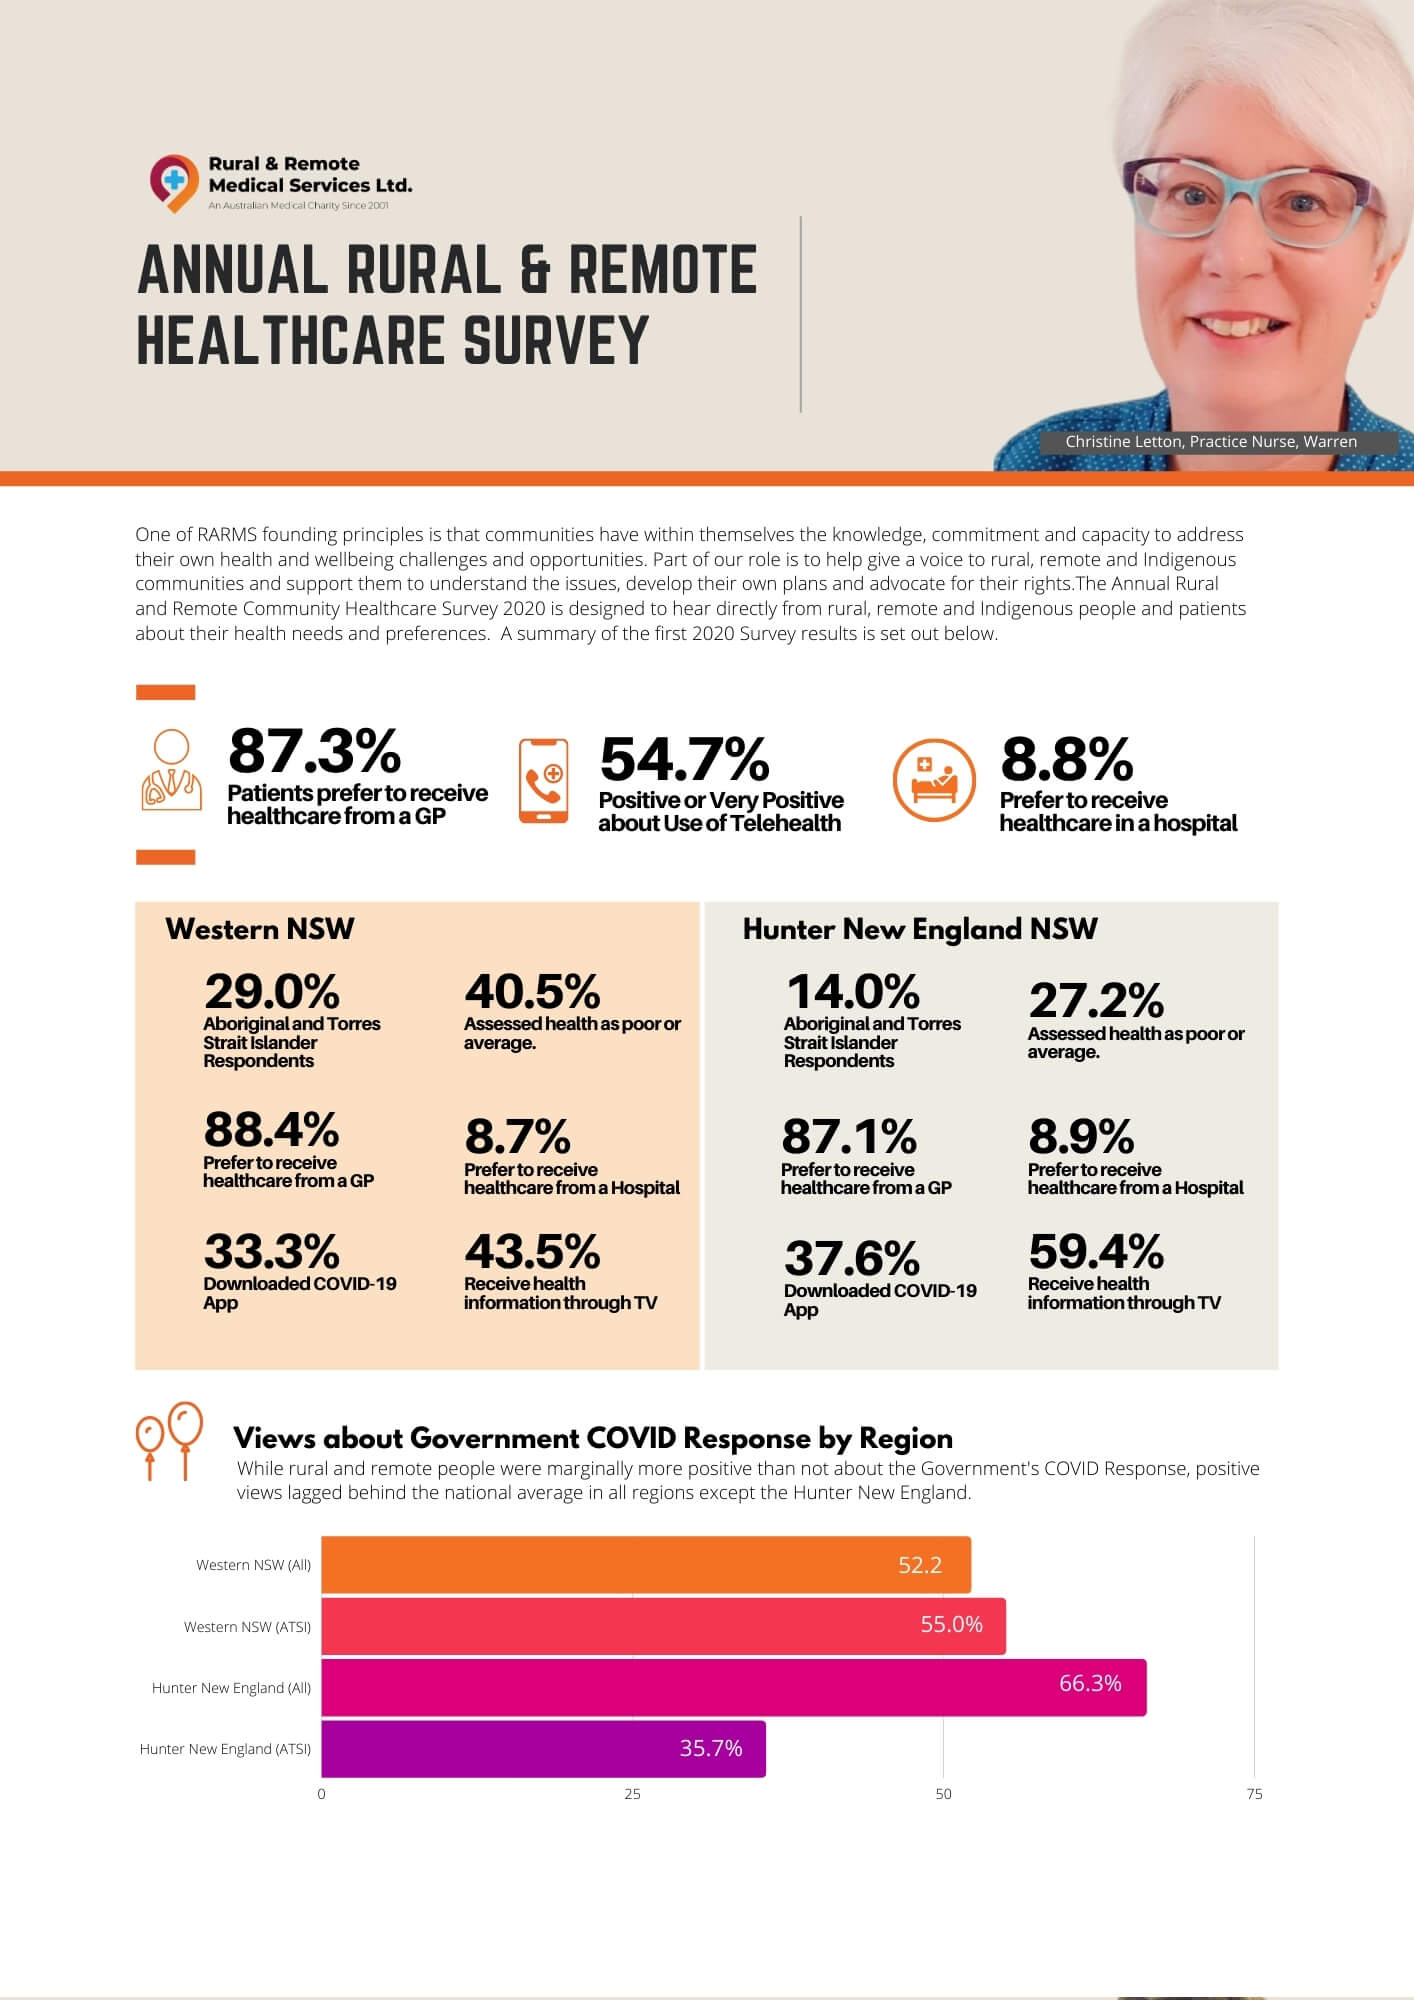 Rural and Remote Community Healthcare Survey